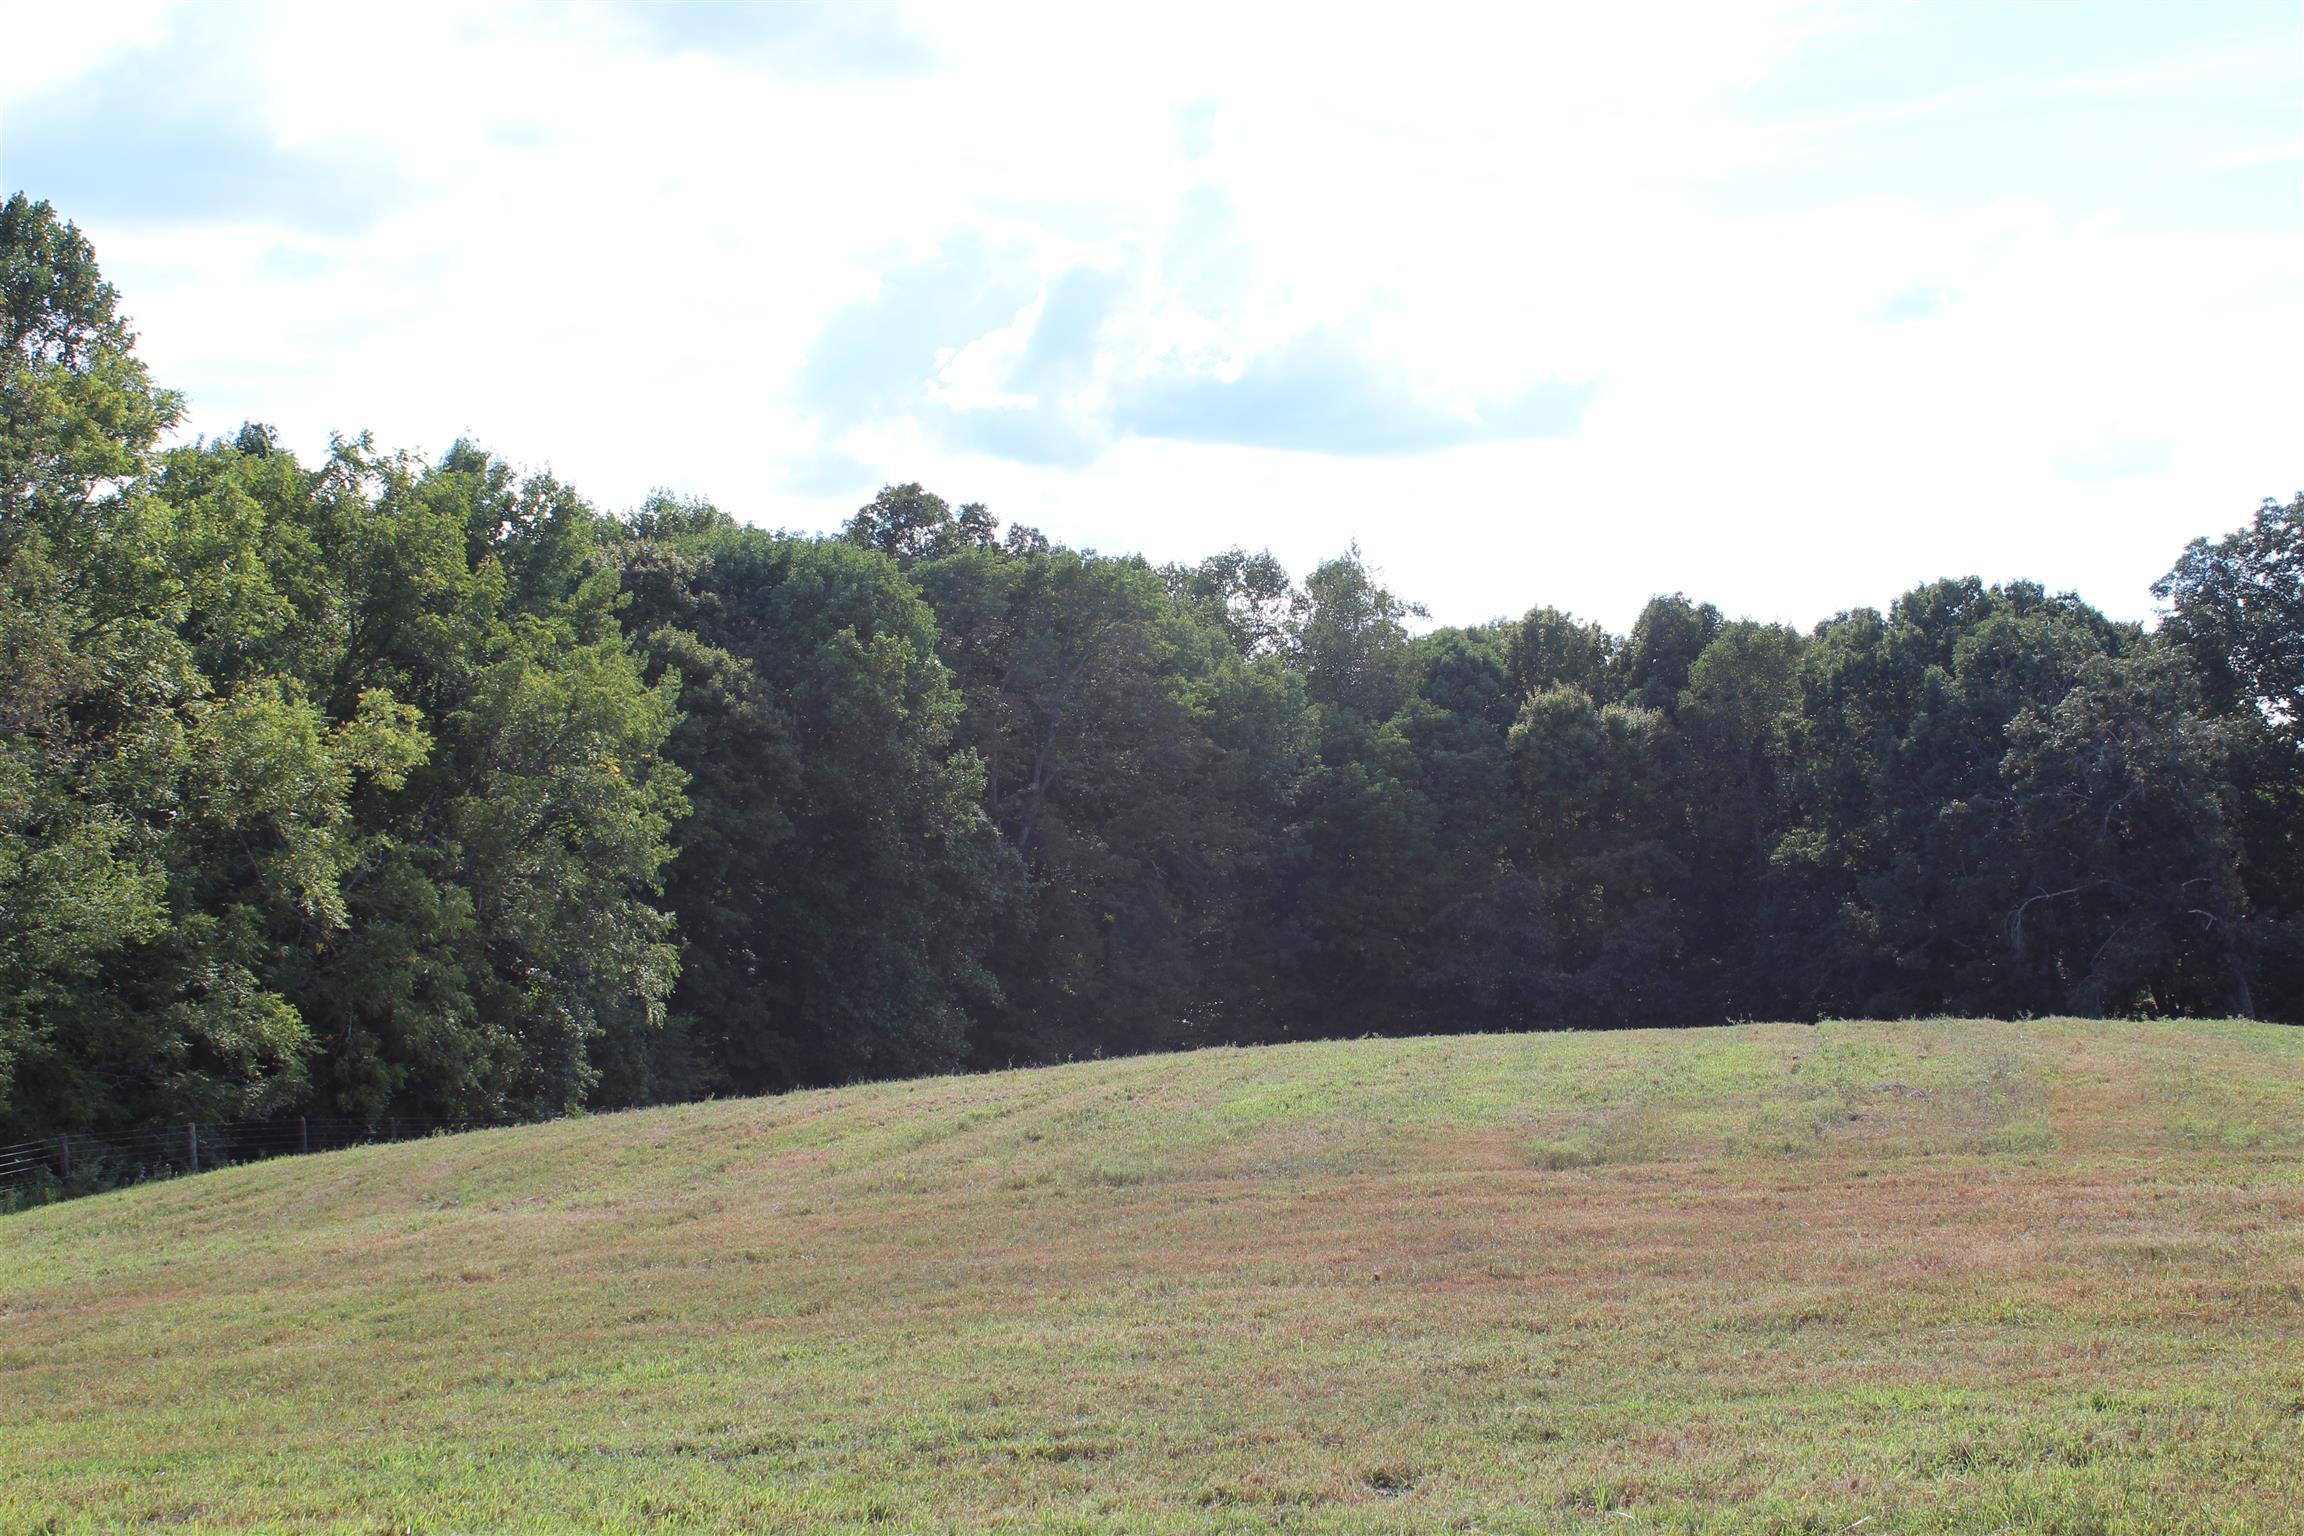 3 Hickory Point Rd (Lot 3), Clarksville, TN 37043 - Clarksville, TN real estate listing